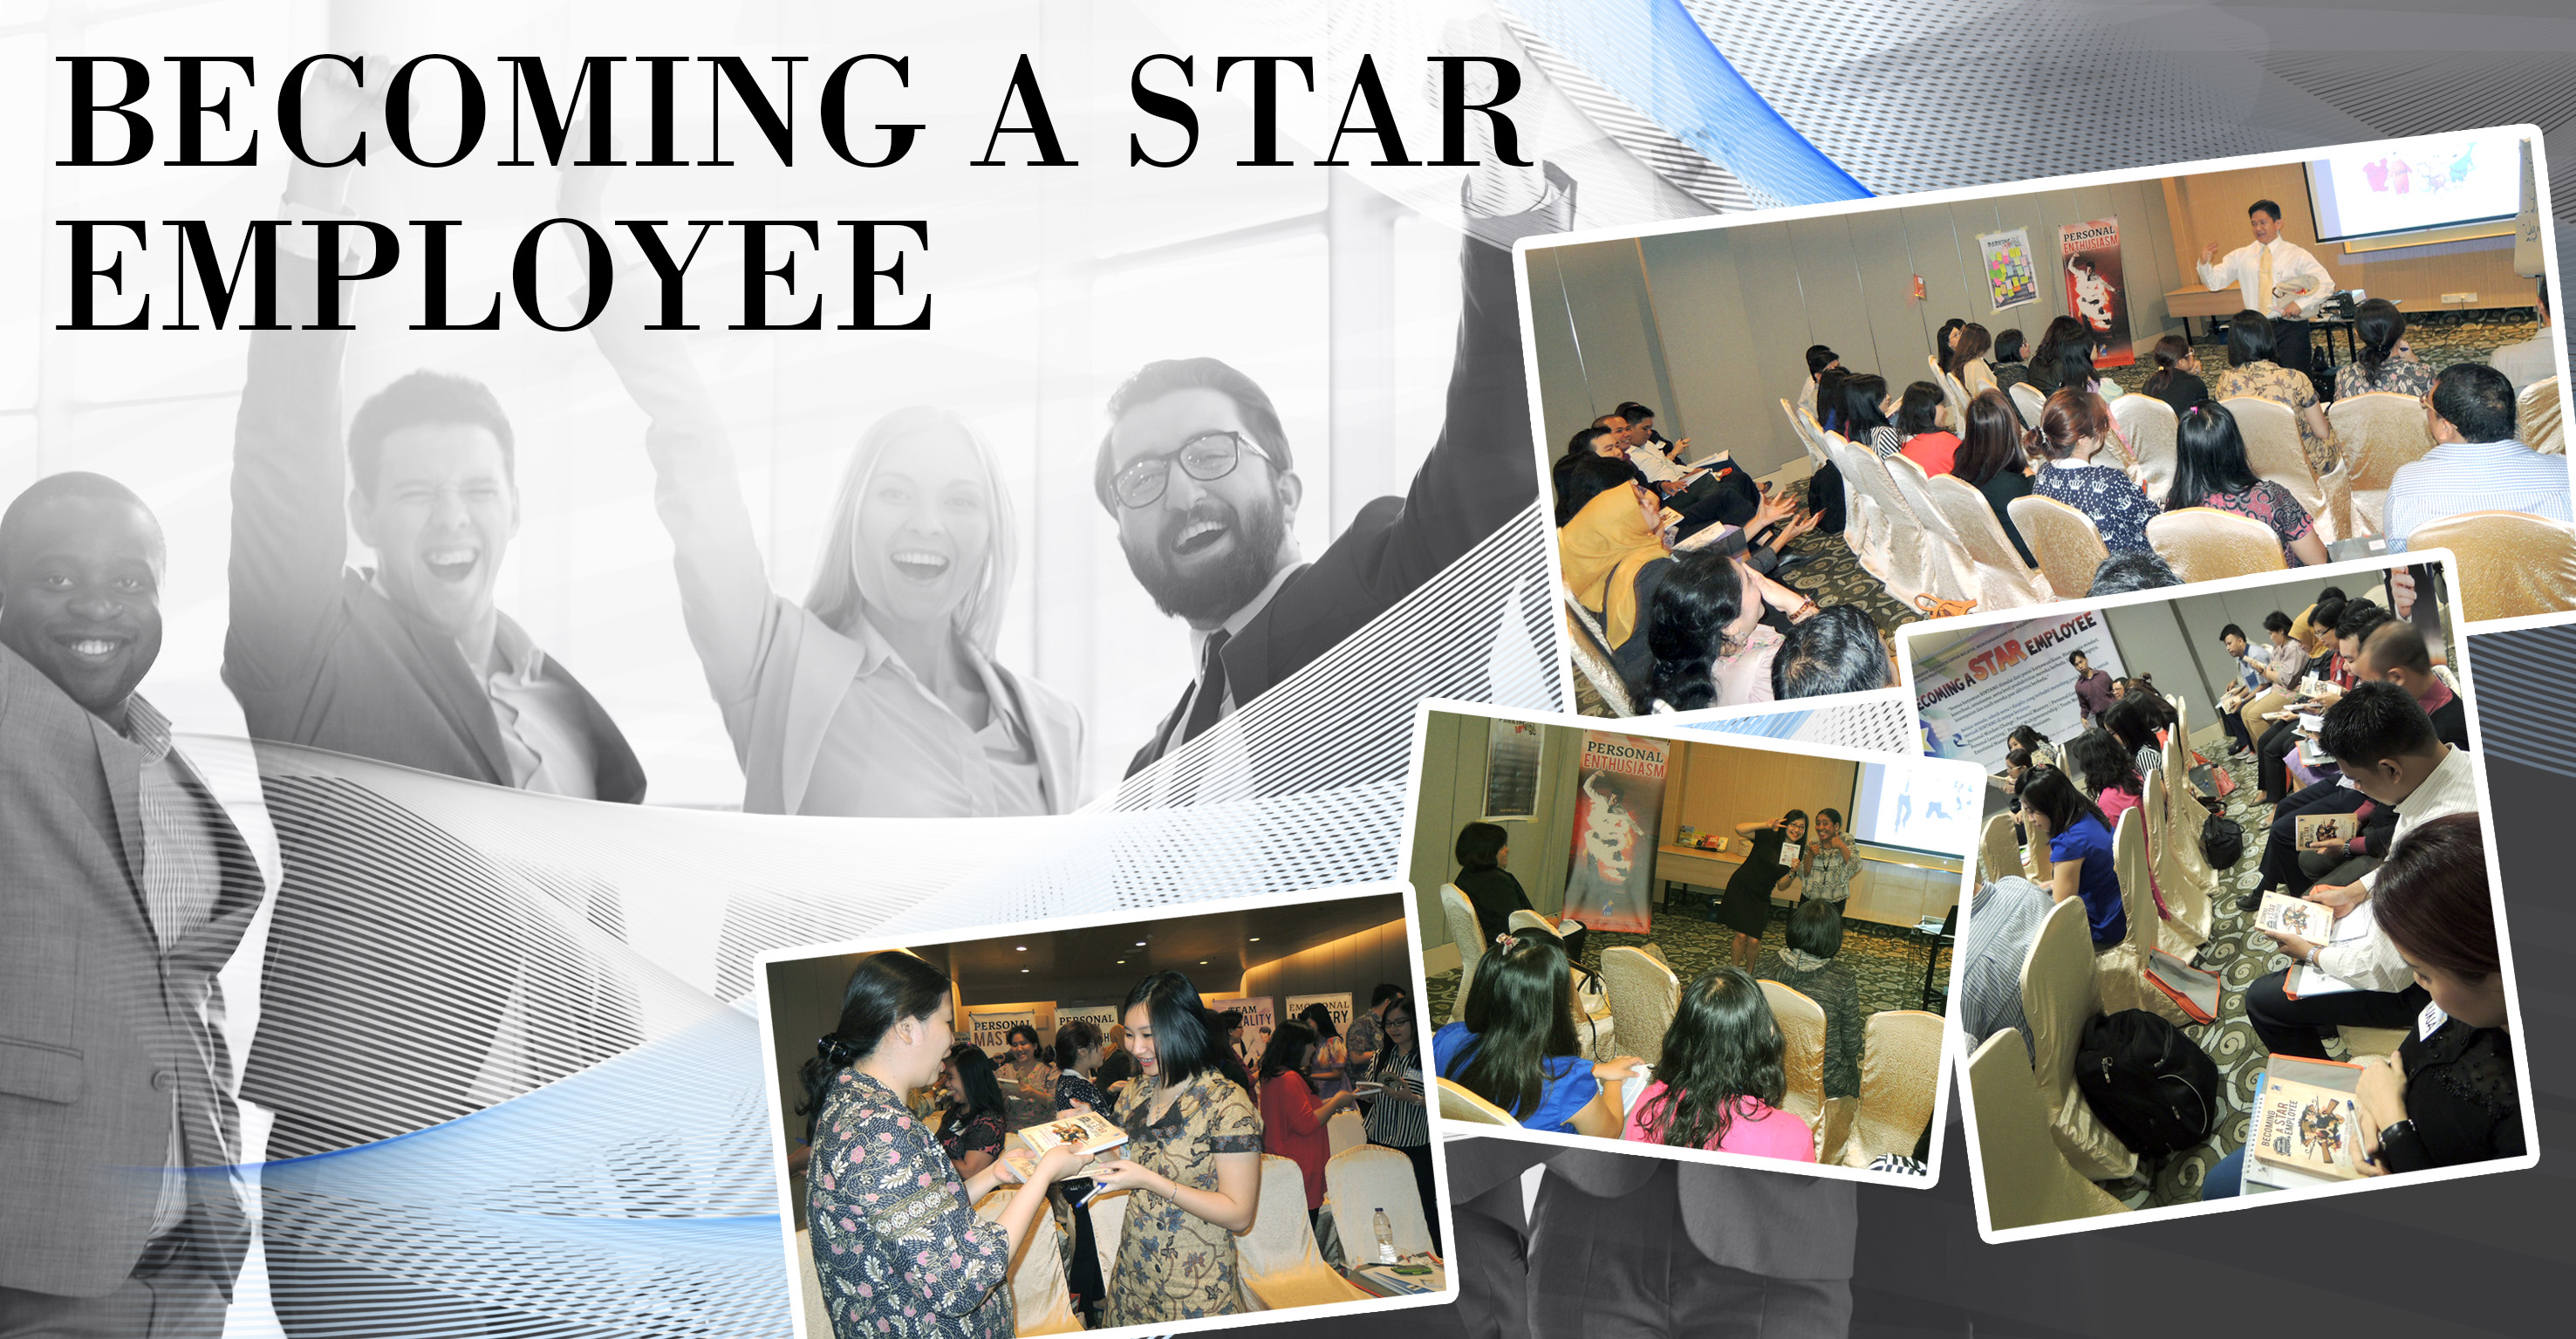 image_Becoming a Star Employee_web hre